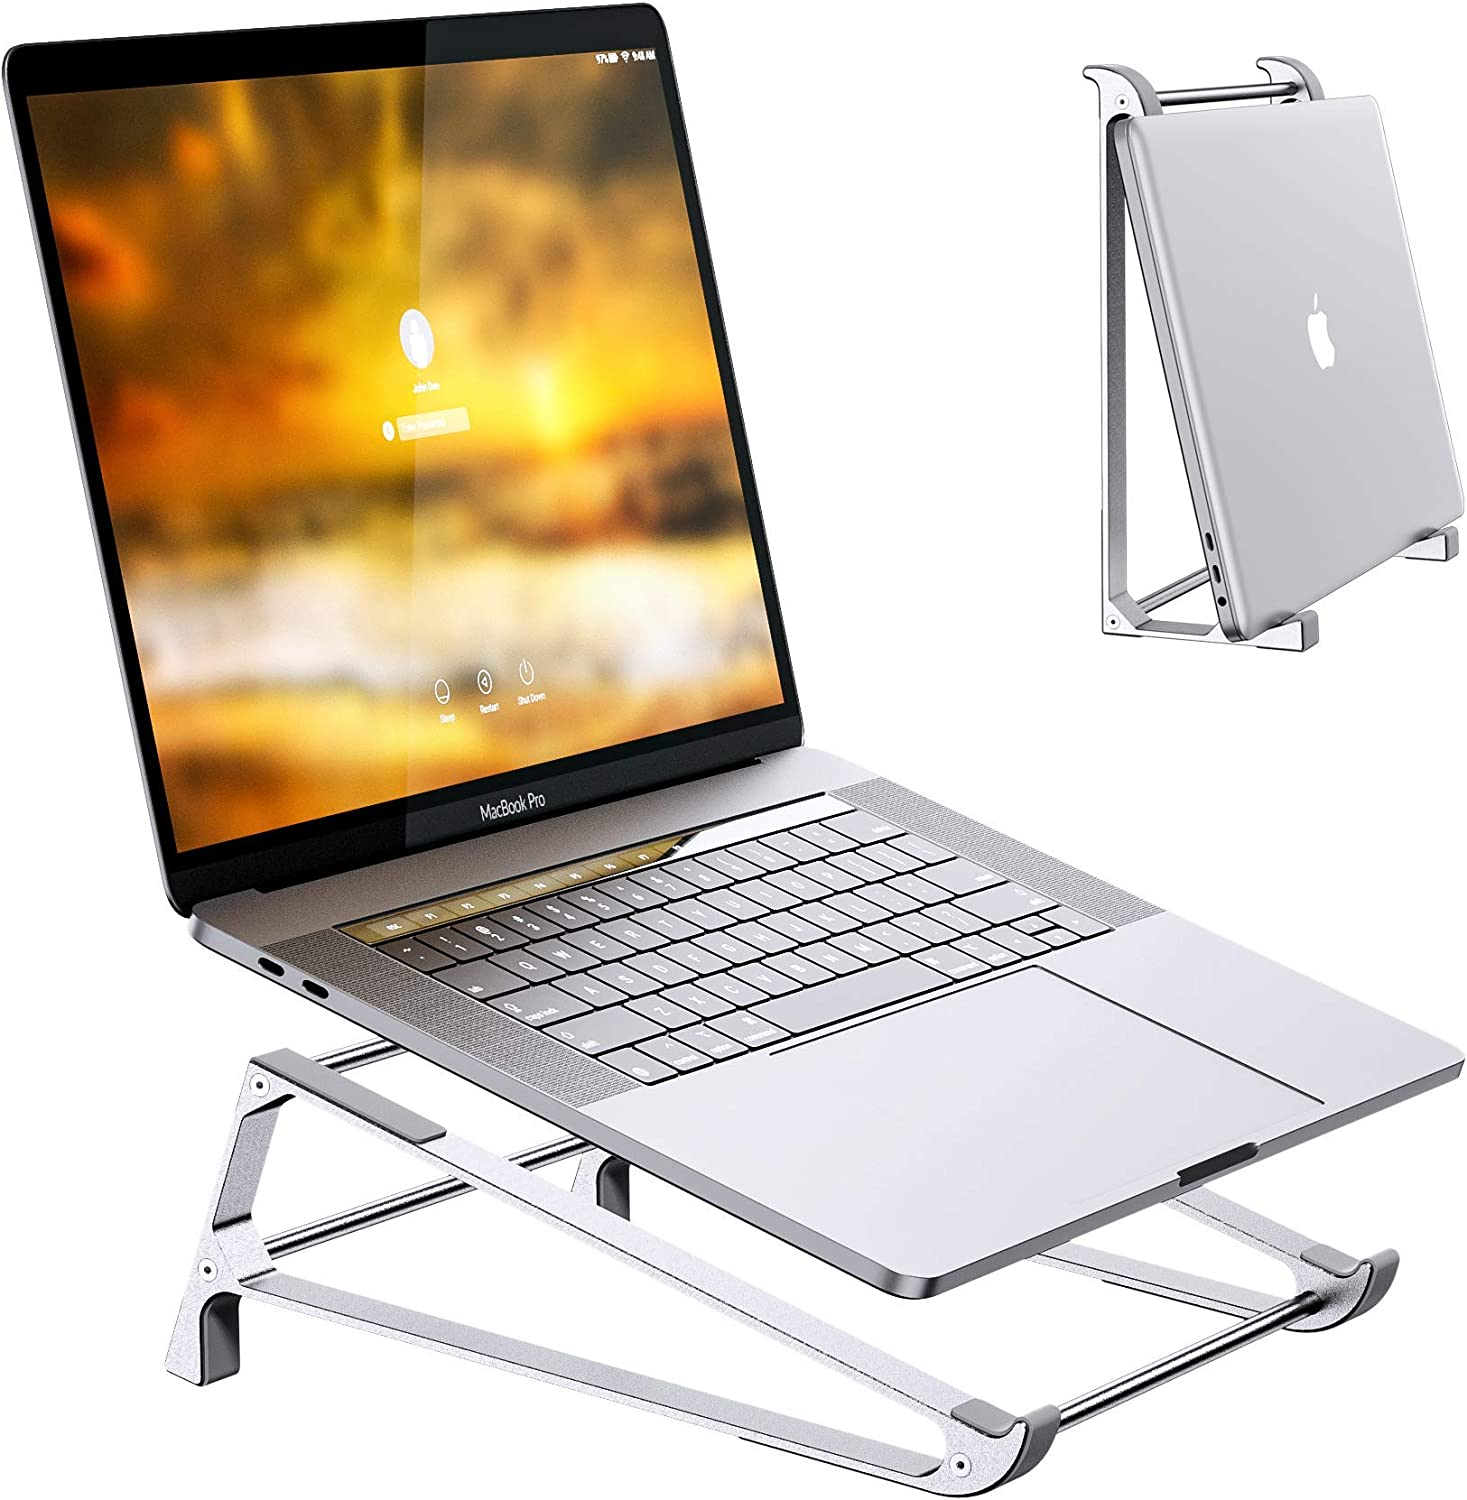 Laptop Stand for Desk, Premium Aerometal Ergonomic Vertical Laptop Stand Holder Compatible with MacBook, Surface, Dell, Lenovo, and Other 10-17 inch Desktop Ventilated Riser, Betidom 2 in 1 Design